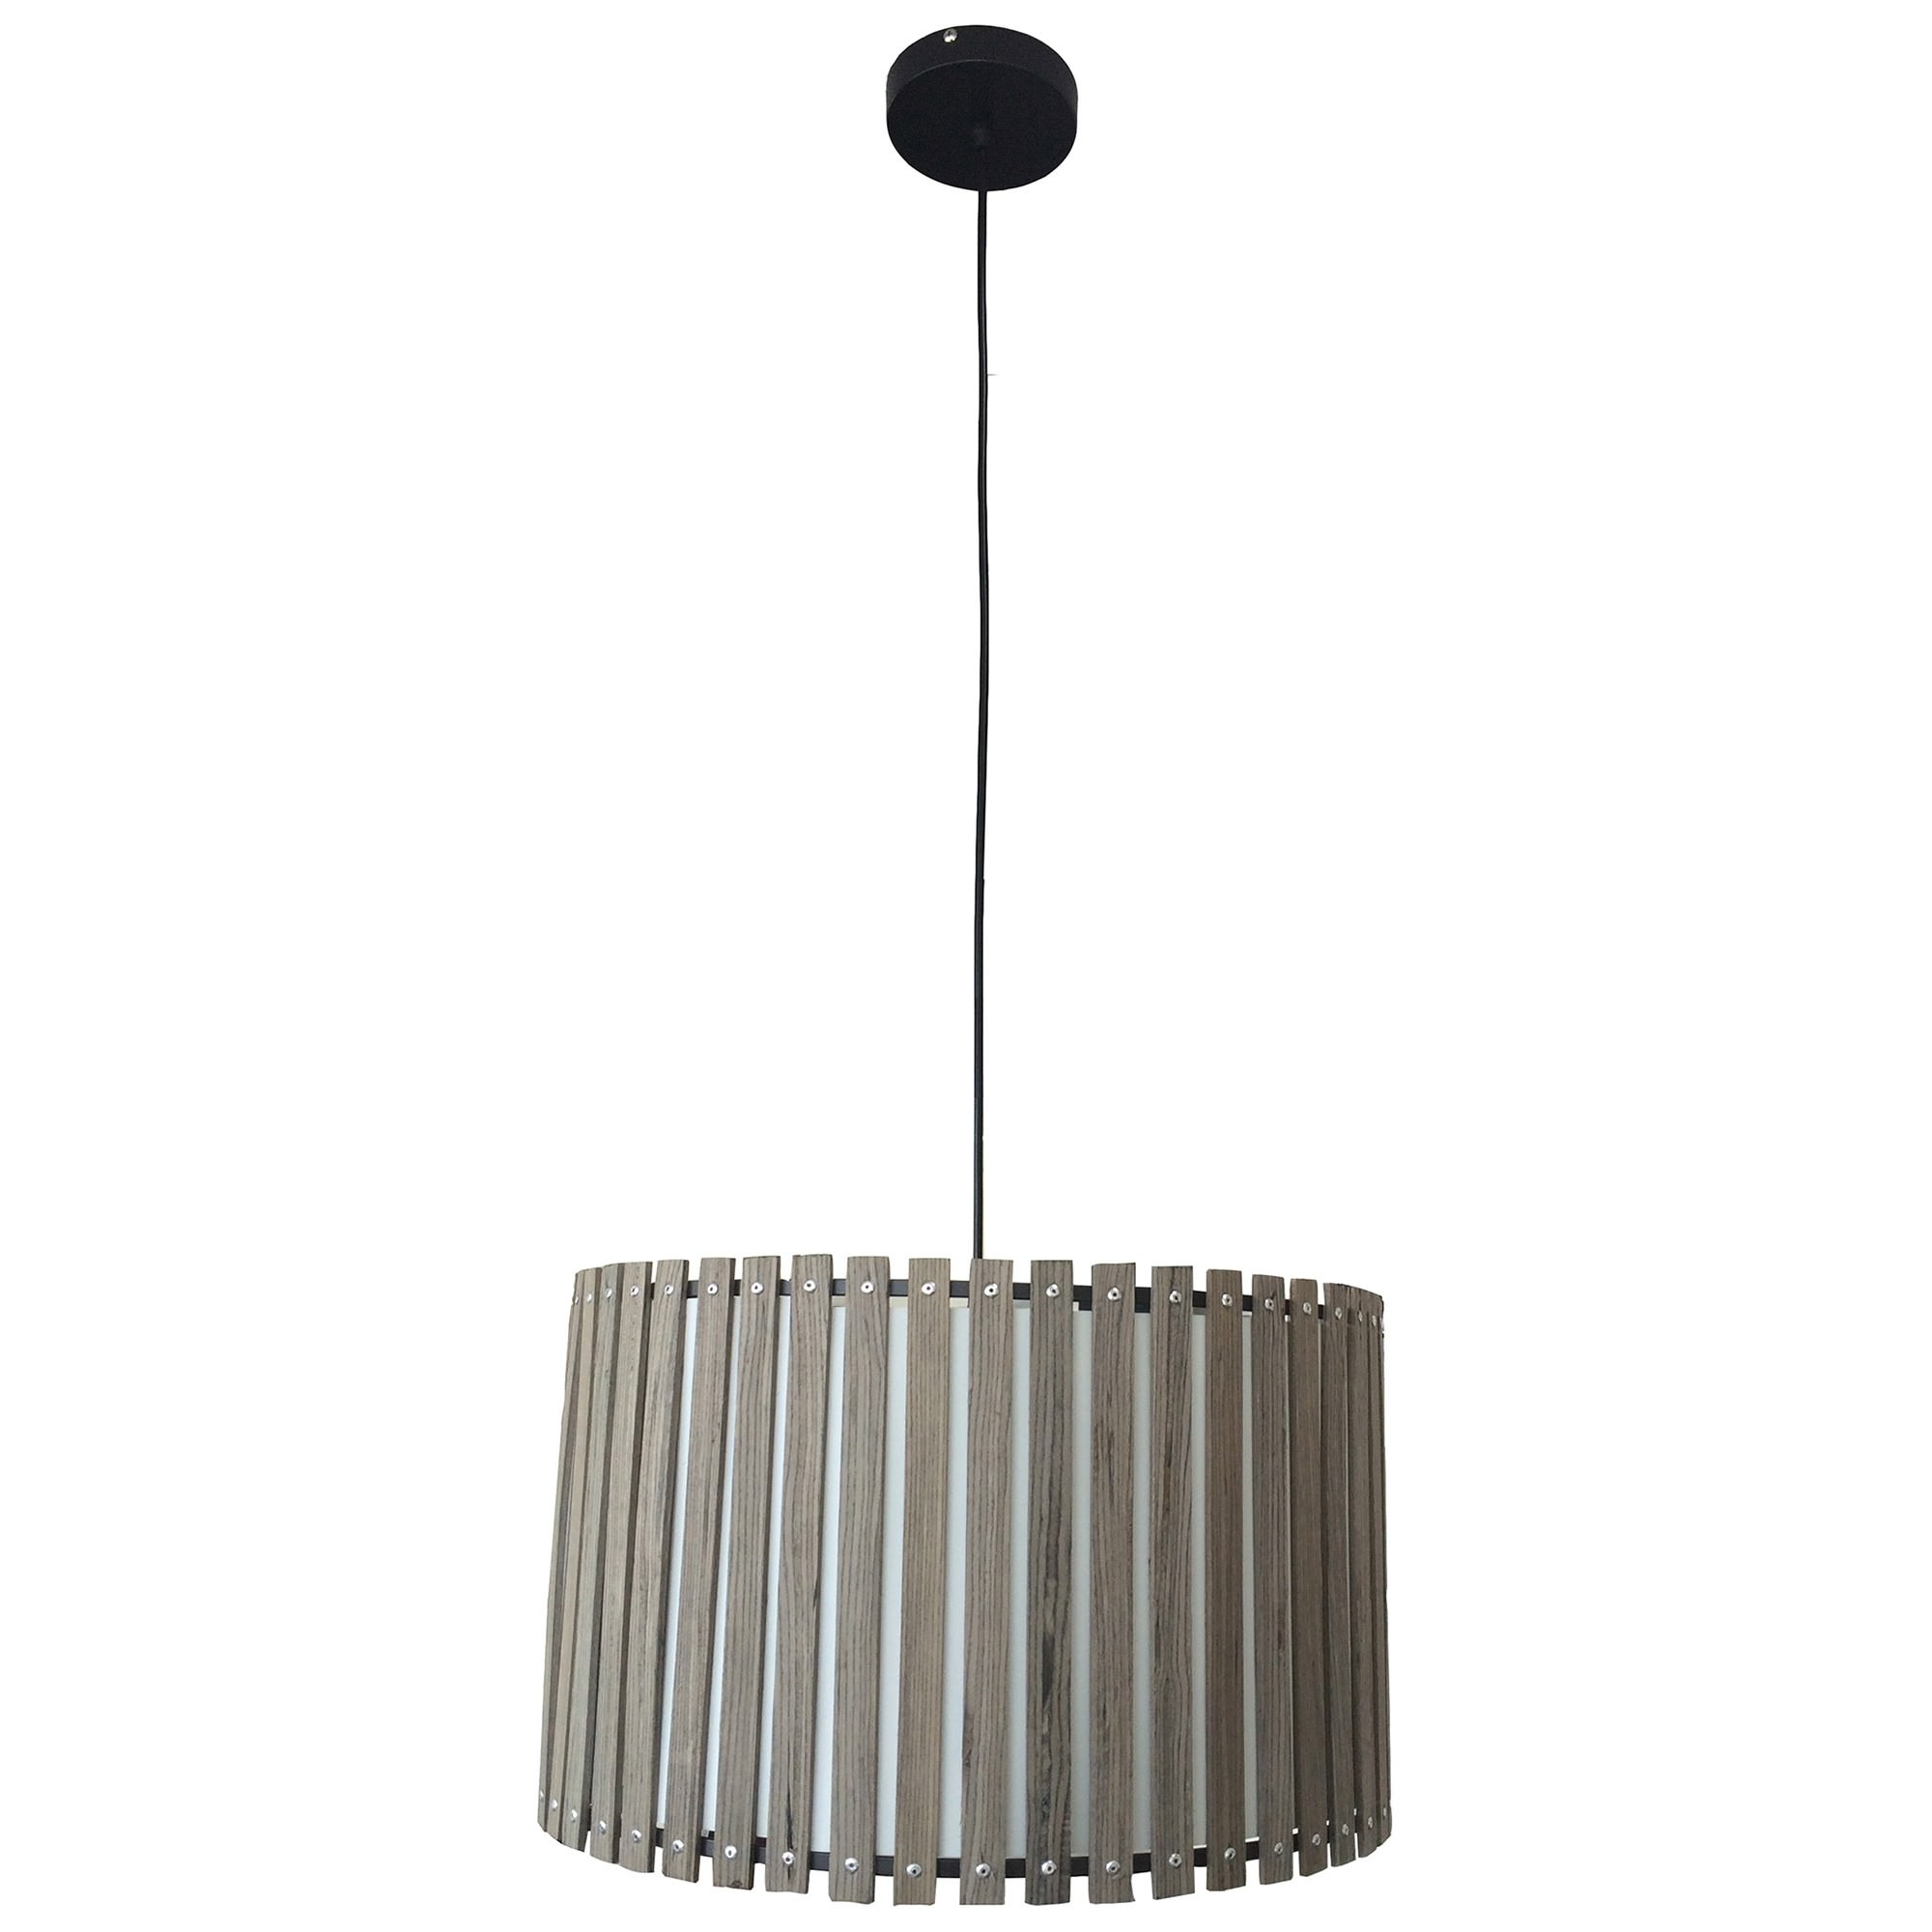 Marsden Wood Slat Shade Pendant Light